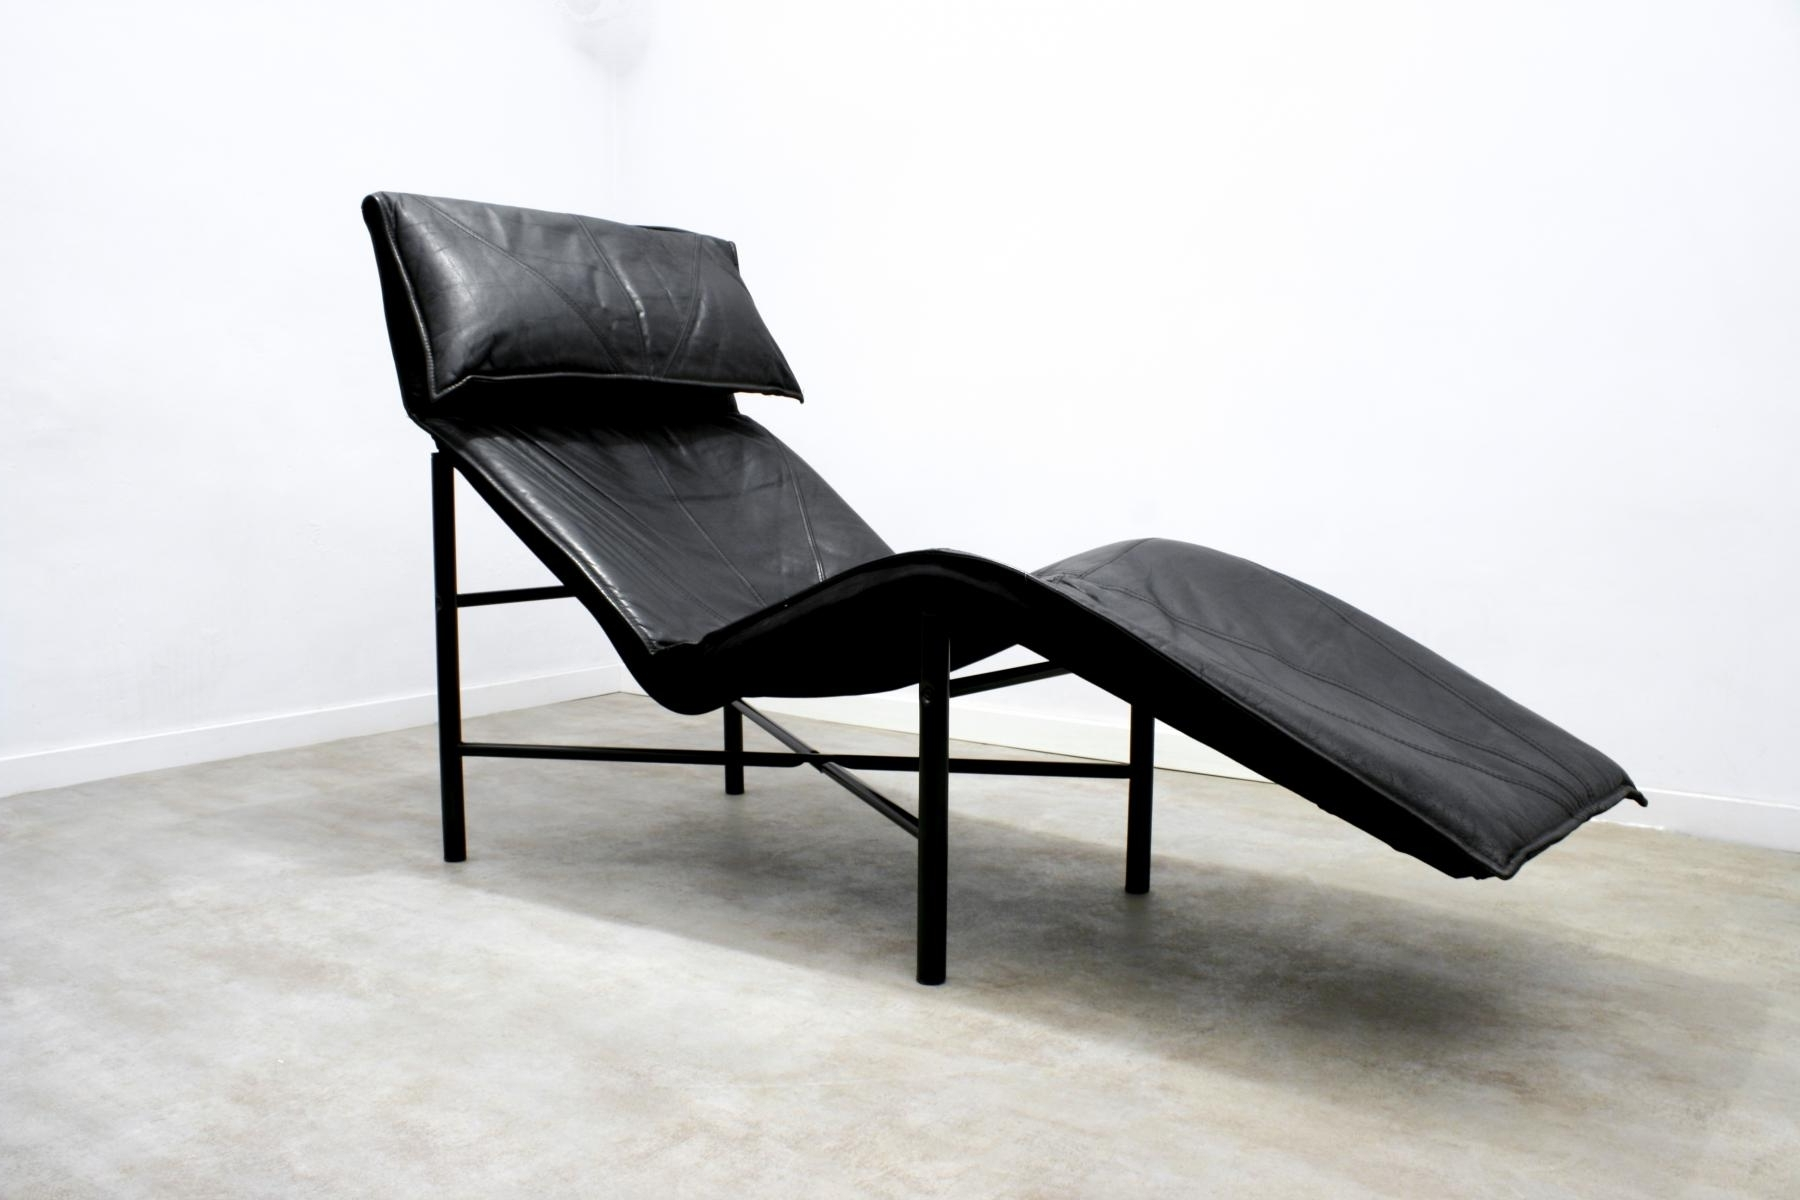 Ikea Chaise Longues With Widely Used Black Leather Skye Chaise Longuetord Björklund For Ikea, 1980S (Gallery 15 of 15)